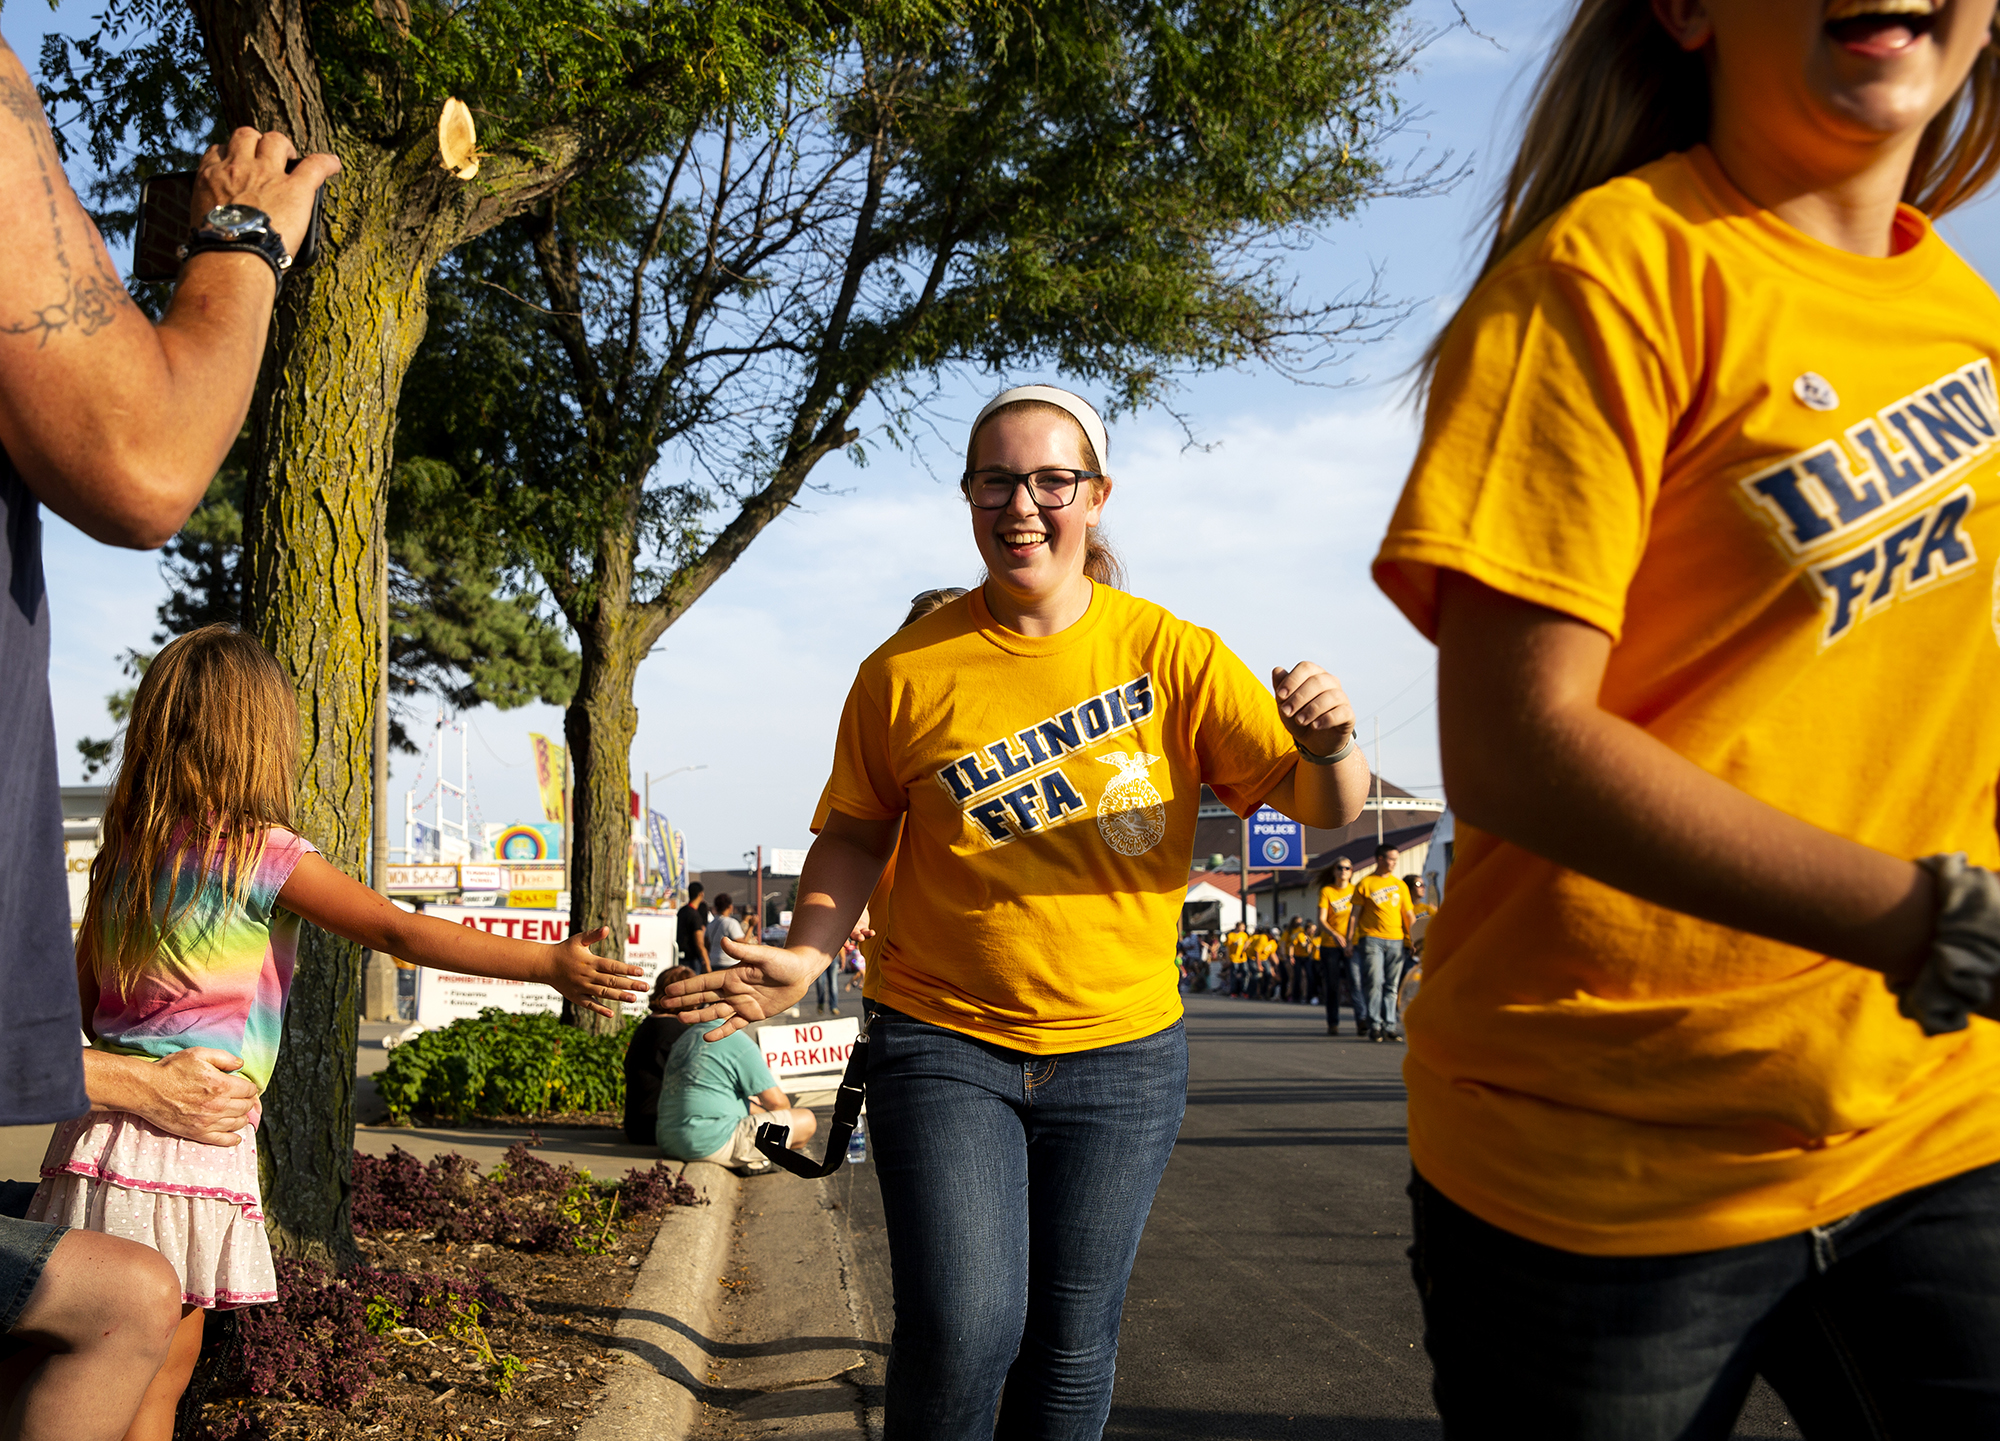 Members of the Illinois FFA exchange high-fives with Annabella Banning as they run past during the Illinois State Fair Twilight Parade Thursday, Aug. 9, 2018 on the Illinois State Fairgrounds in Springfield, Ill. [Rich Saal/The State Journal-Register]